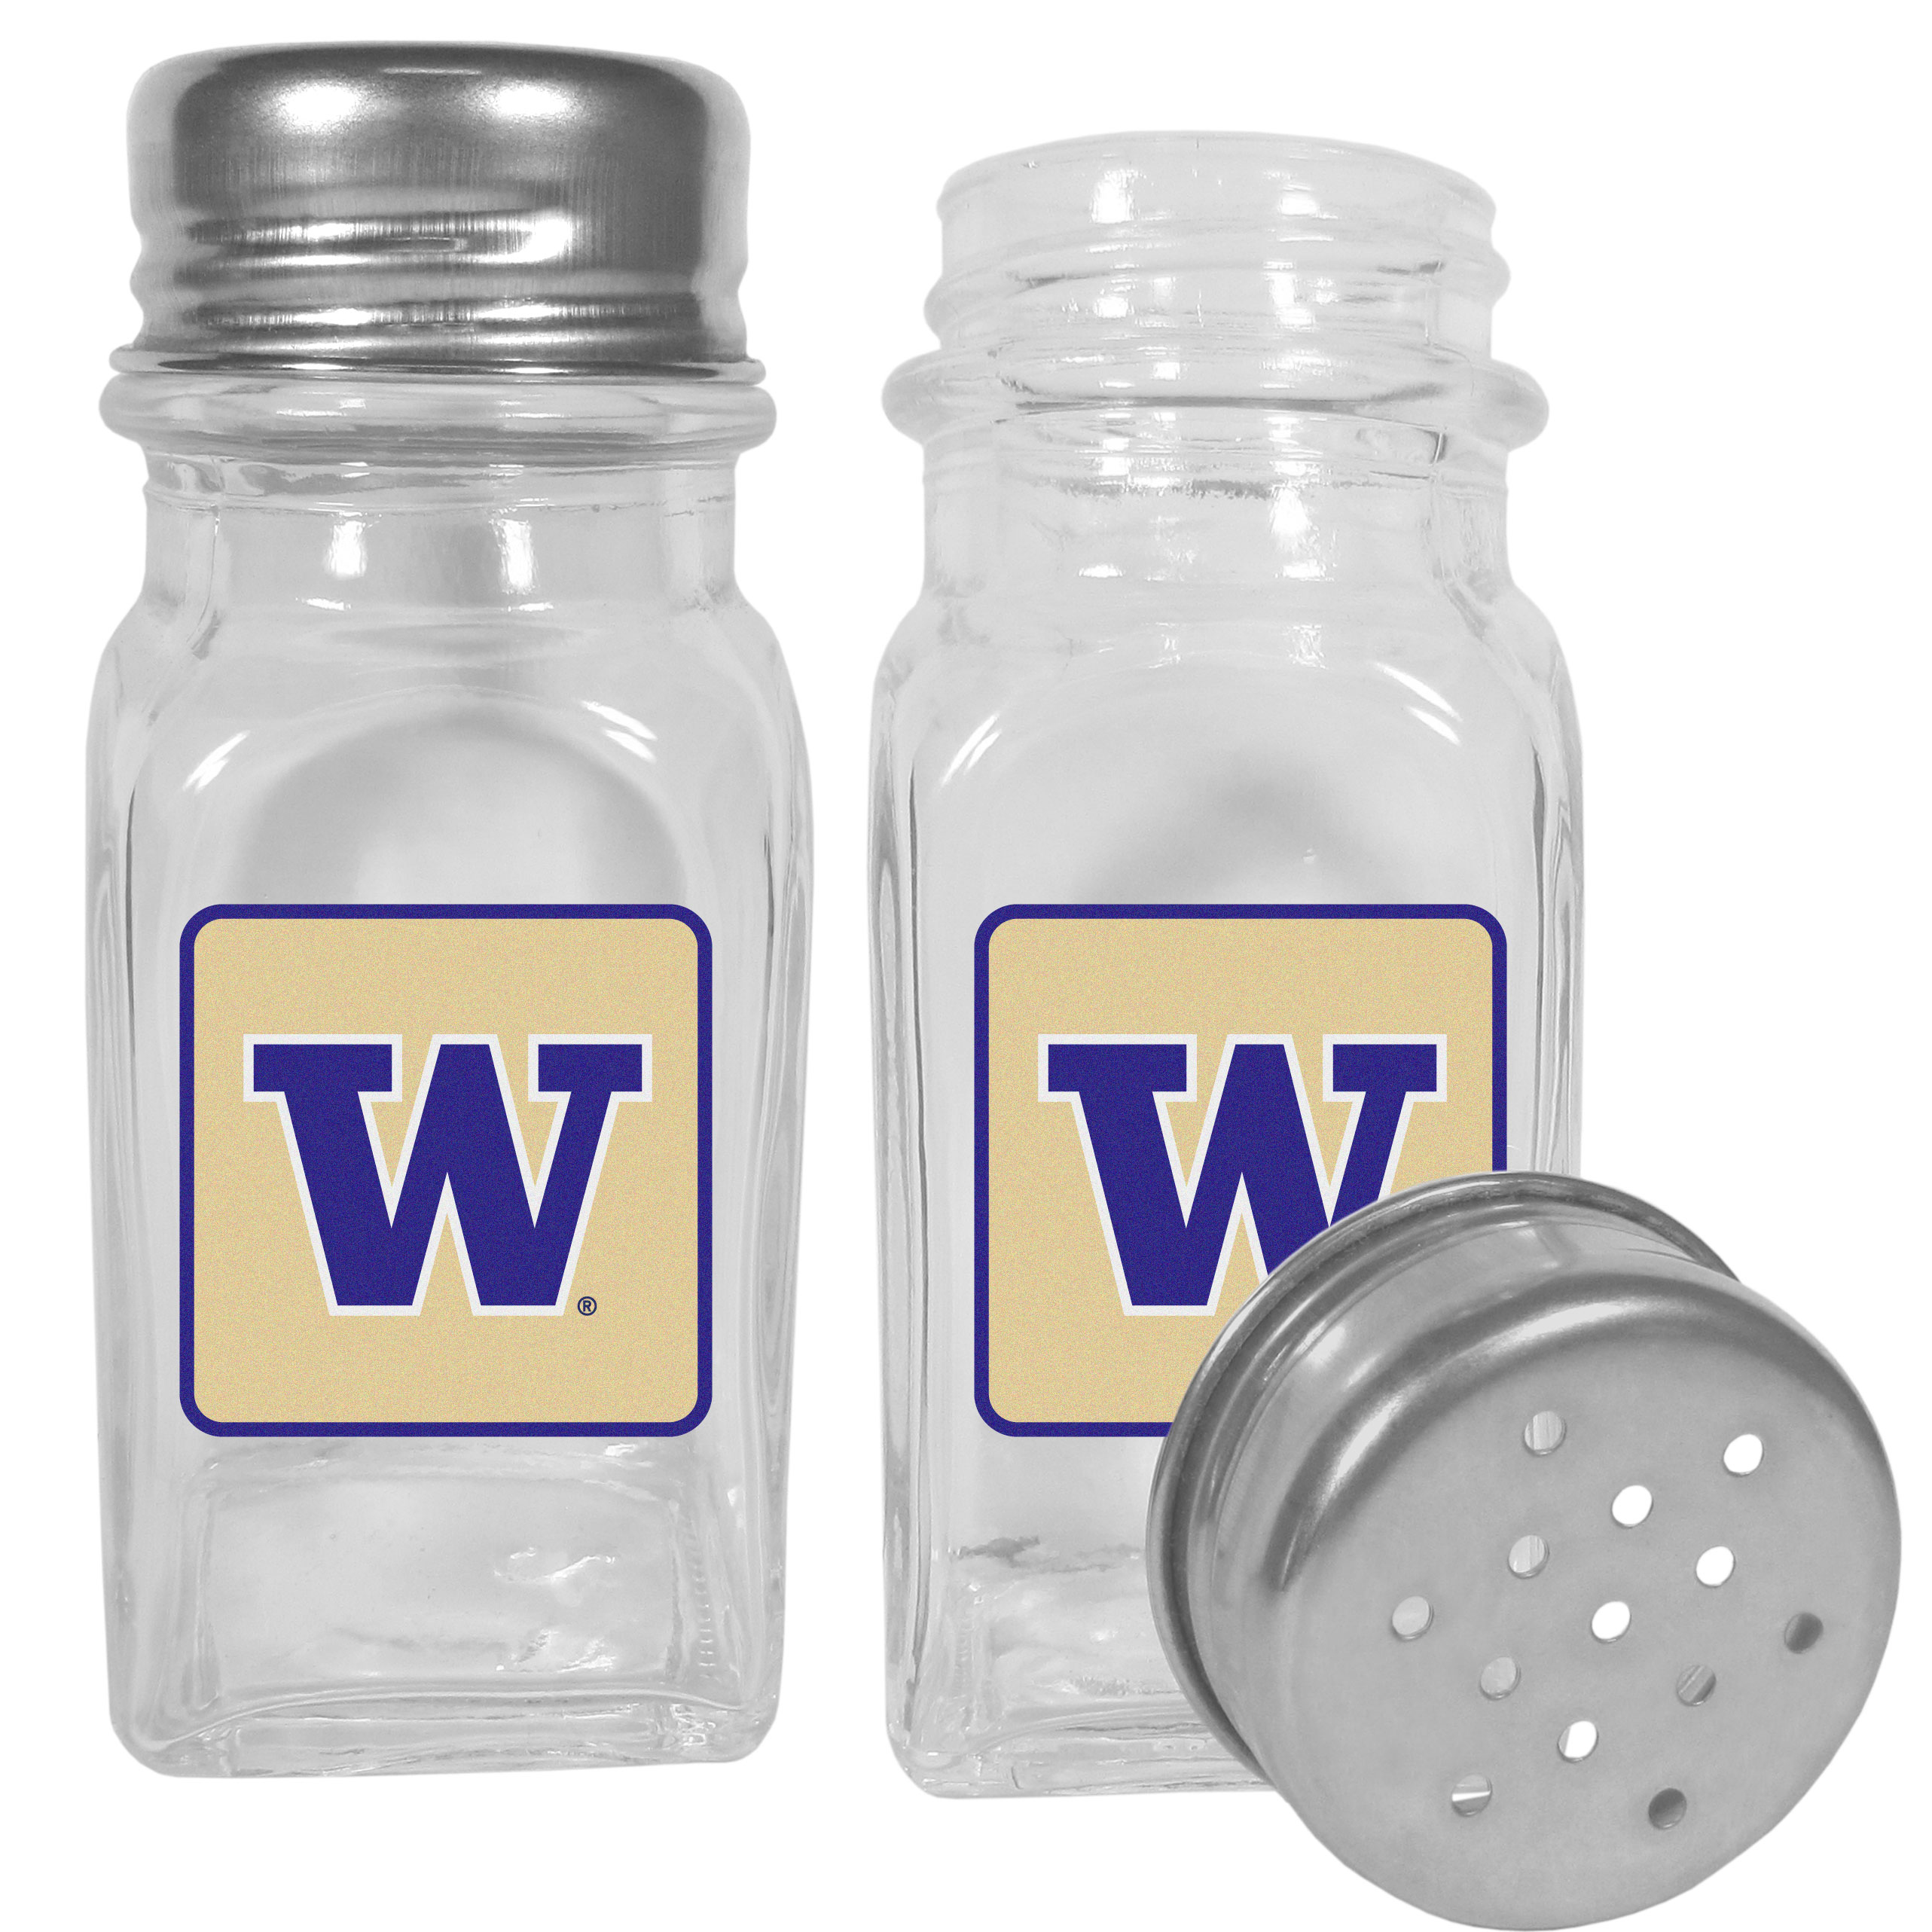 Washington Huskies Graphics Salt & Pepper Shaker - No tailgate party is complete without your Washington Huskies salt & pepper shakers featuring bright team logos. The diner replica salt and pepper shakers are glass with screw top lids. These team shakers are a great grill accessory whether you are barbecuing on the patio, picnicing or having a game day party.